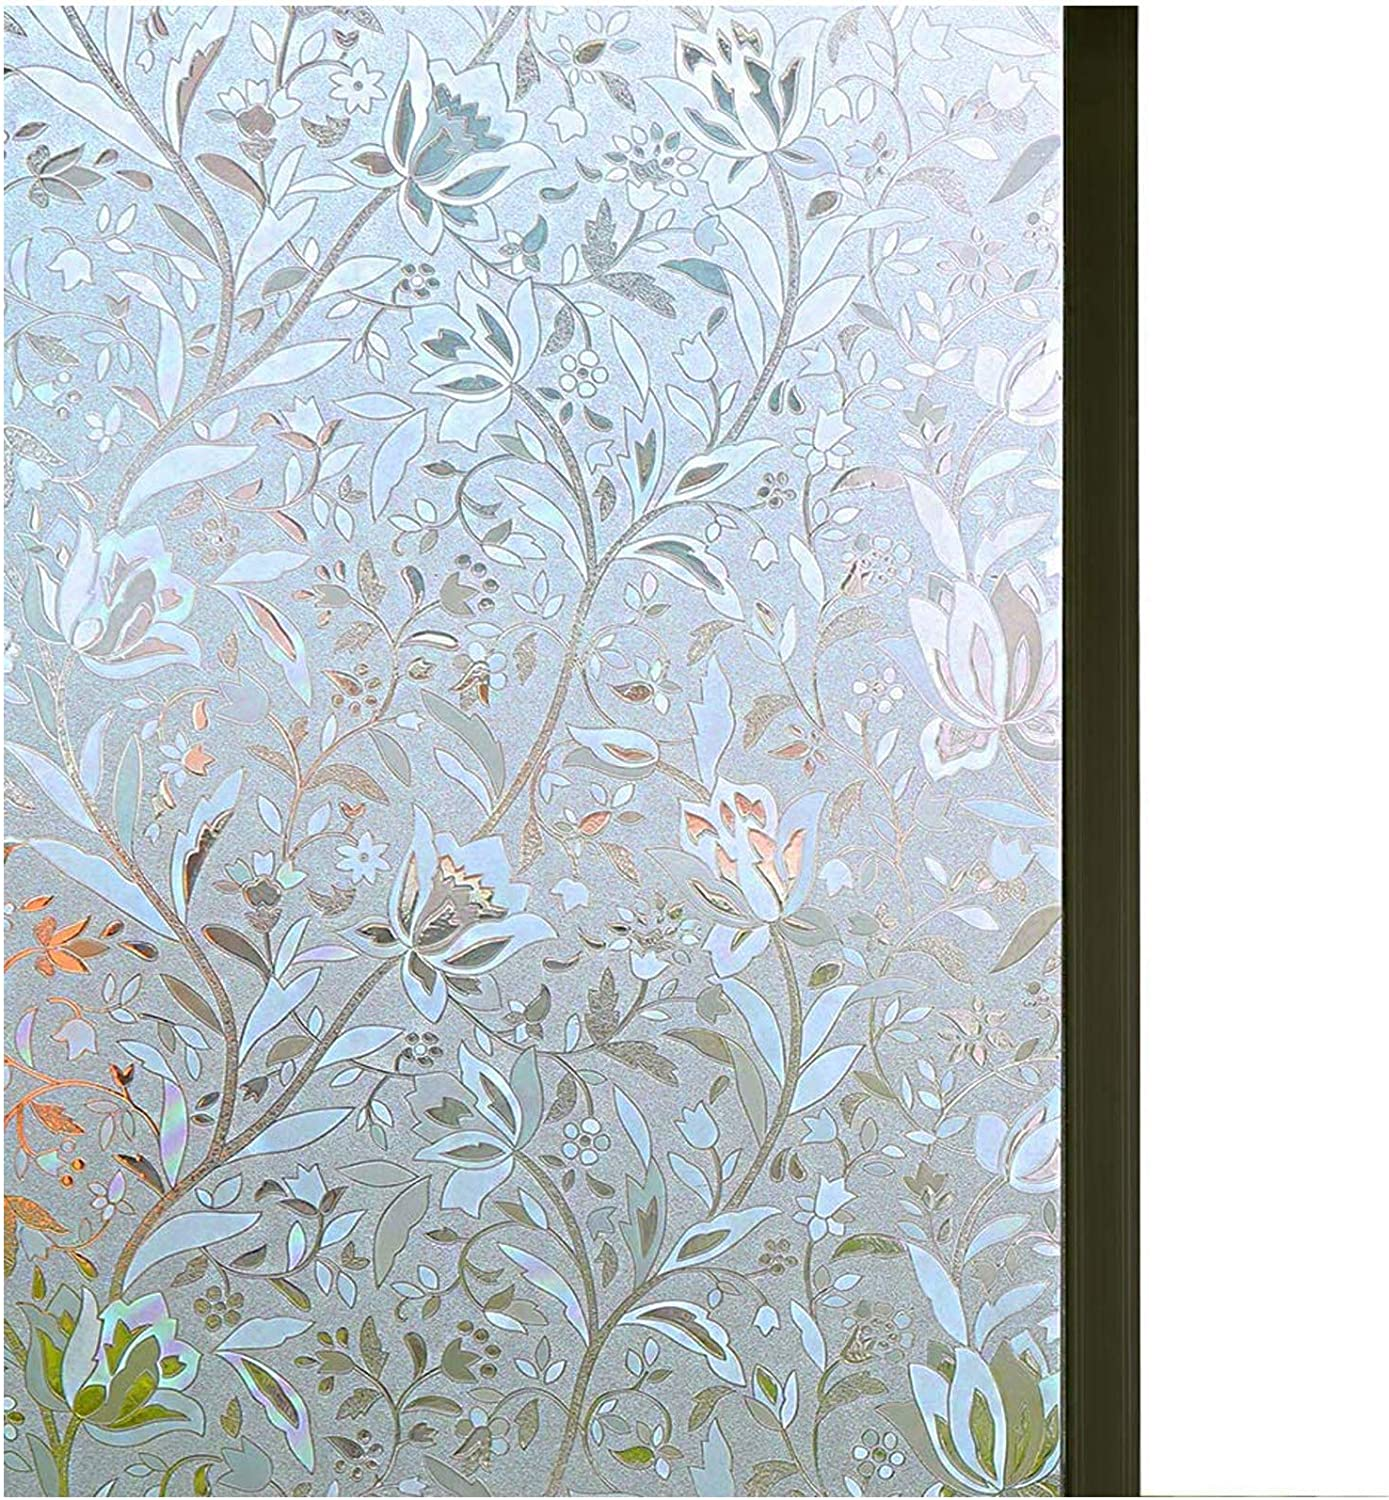 """Niviy Window Privacy Film 35.4"""" by 78.7"""" Glass Film Decorative Window Films Window Cling Film Static Cling Window Film No Glue Heat Control for Home Office"""